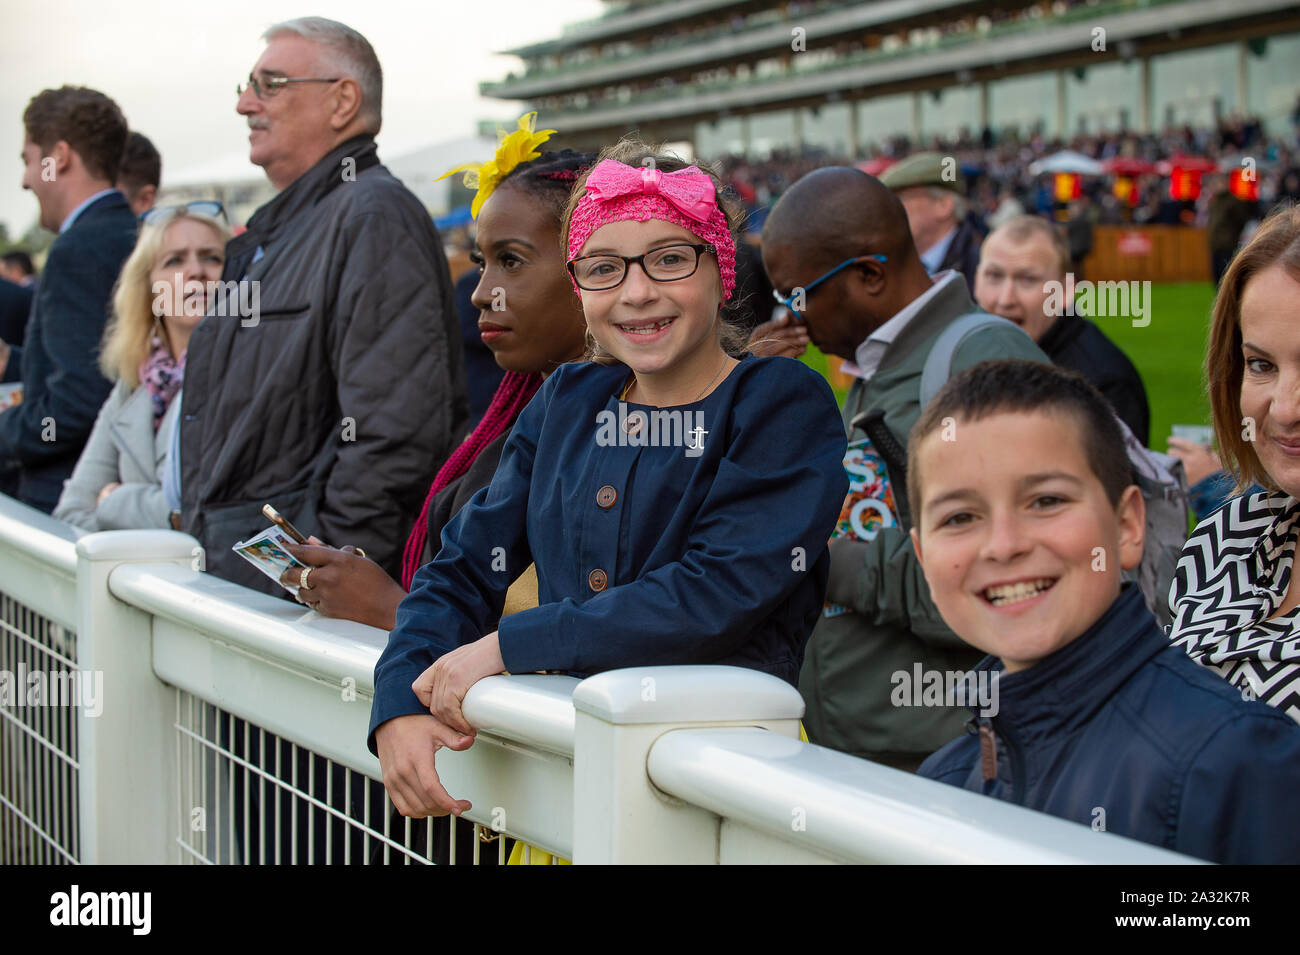 Autumn Racing Weekend & Ascot Beer Festival, Ascot Racecourse, Ascot, Berkshire, UK. 4th October, 2019. Children enjoying their day at the races. Credit: Maureen McLean/Alamy Stock Photo